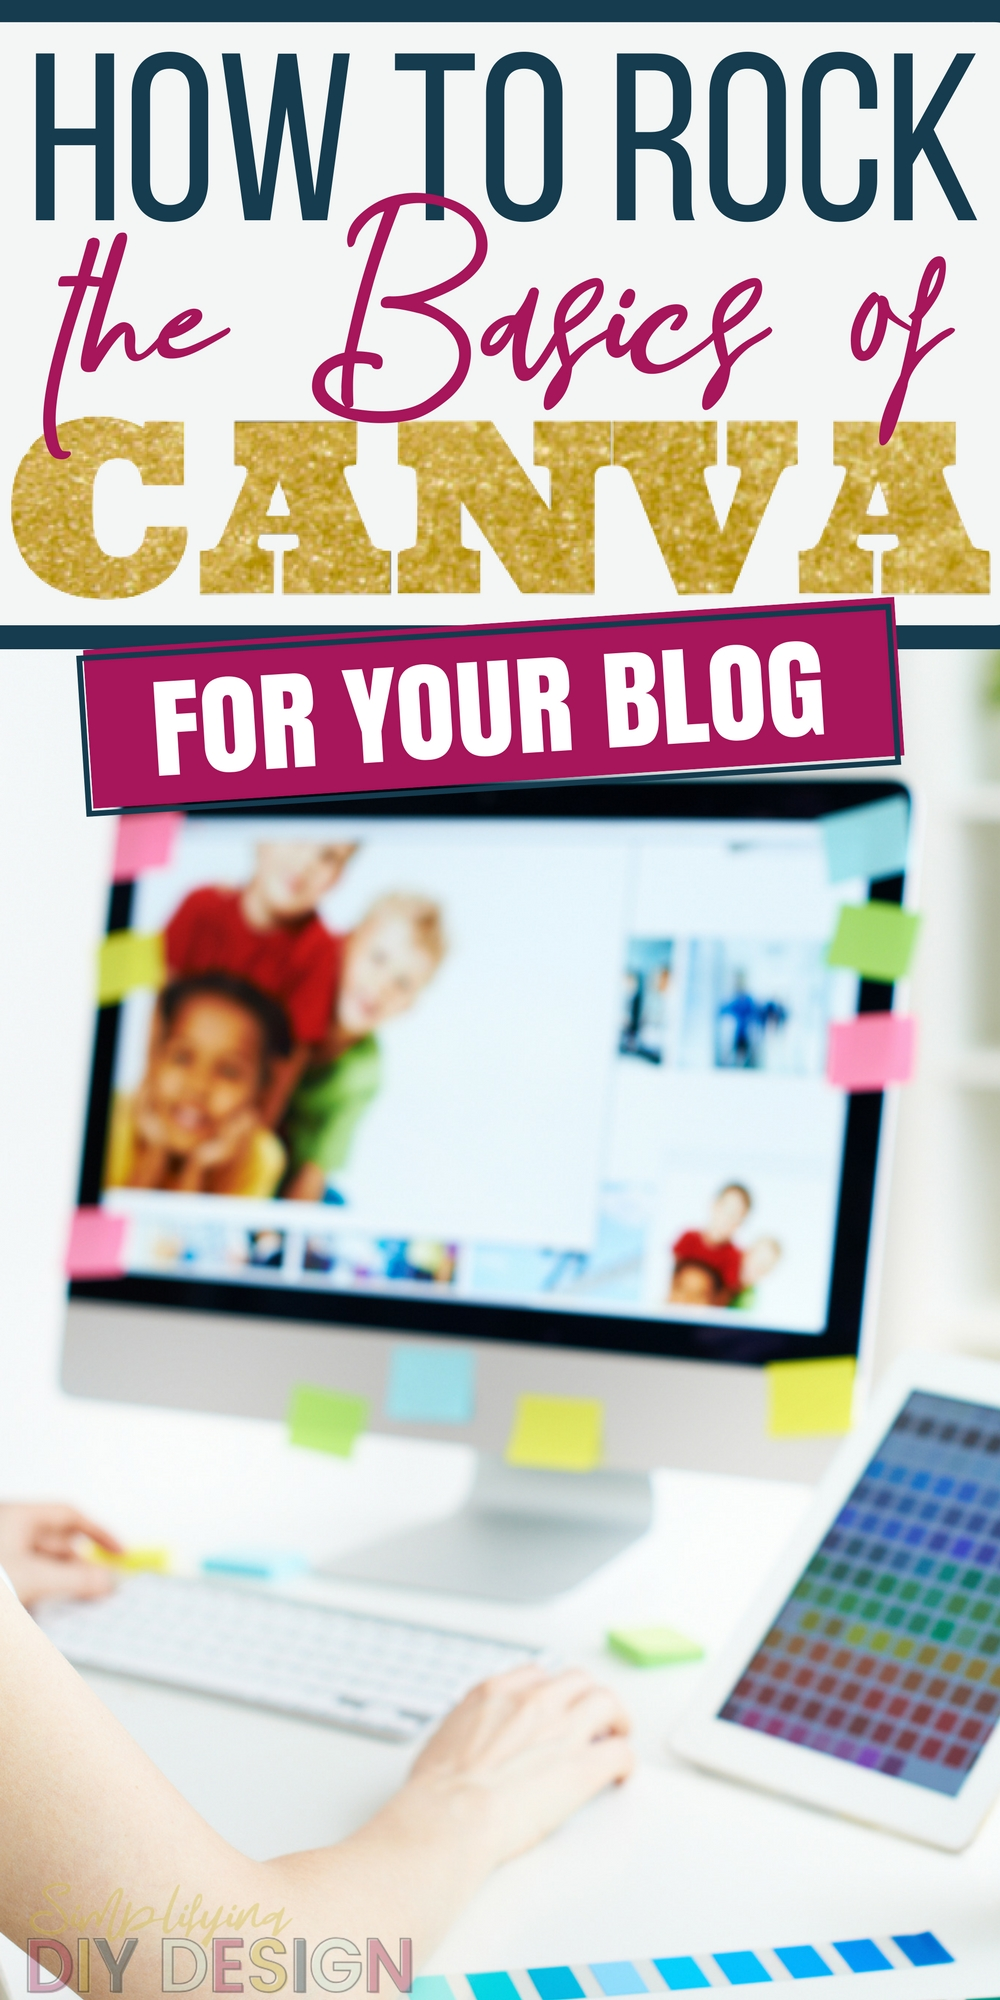 Ugh yes!! Ok I can't even tell you how many hours I spent looking at tutorials and trying to figure out how to make my lead magnets and other blogging projects Pinterest pretty with Canva. You NEED to have eye catching and professional graphics if you want to grow your blog-- it's such a life saver that I can do this in Canva now!!